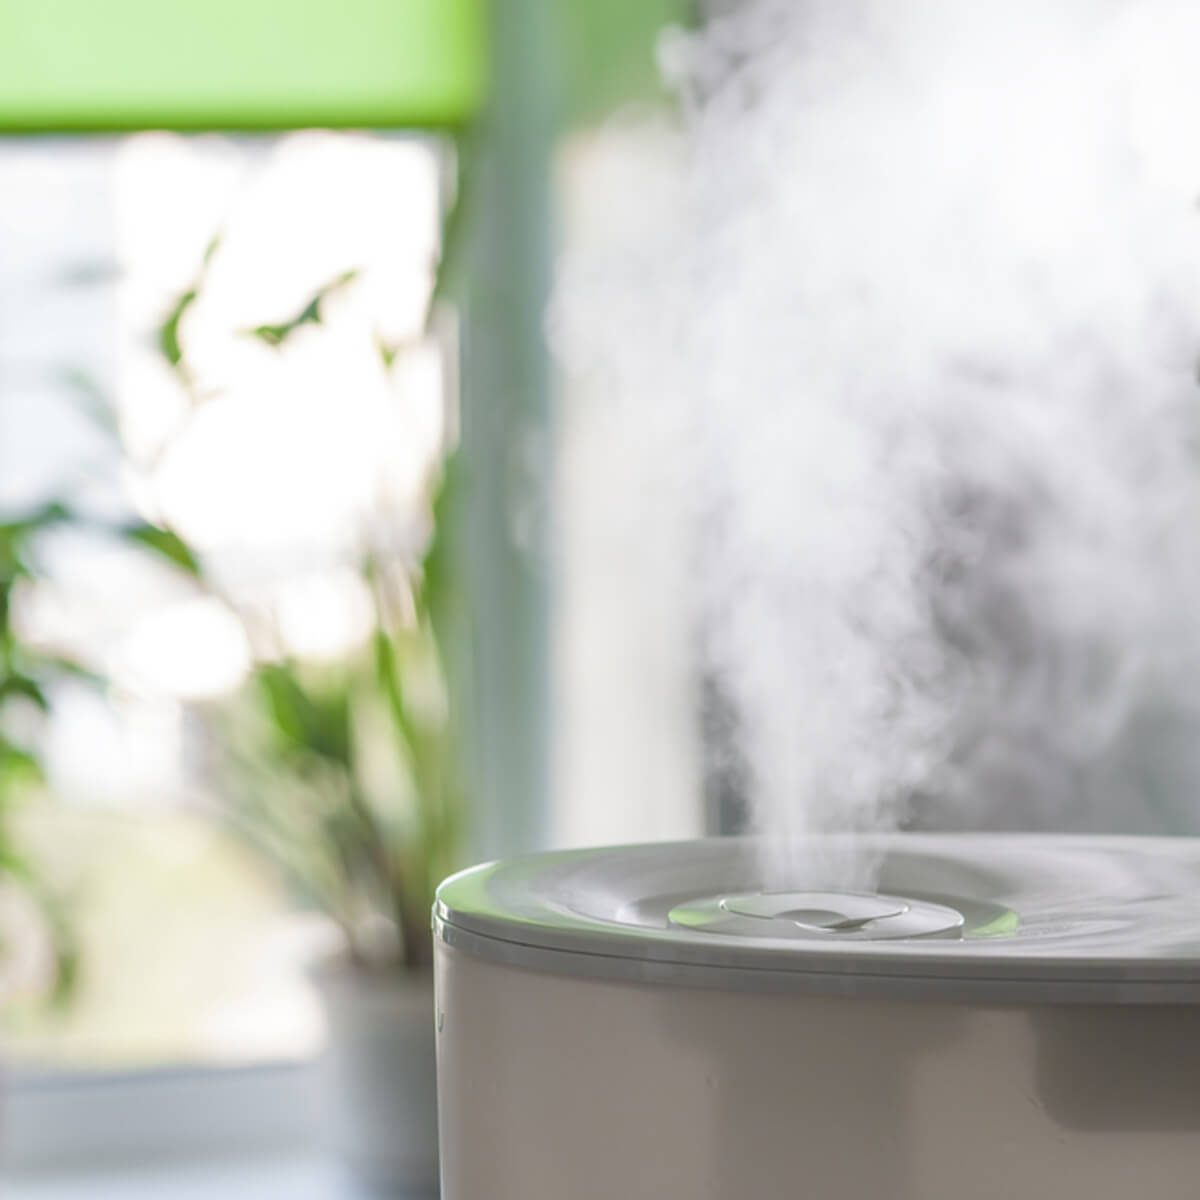 Prep the Humidifier